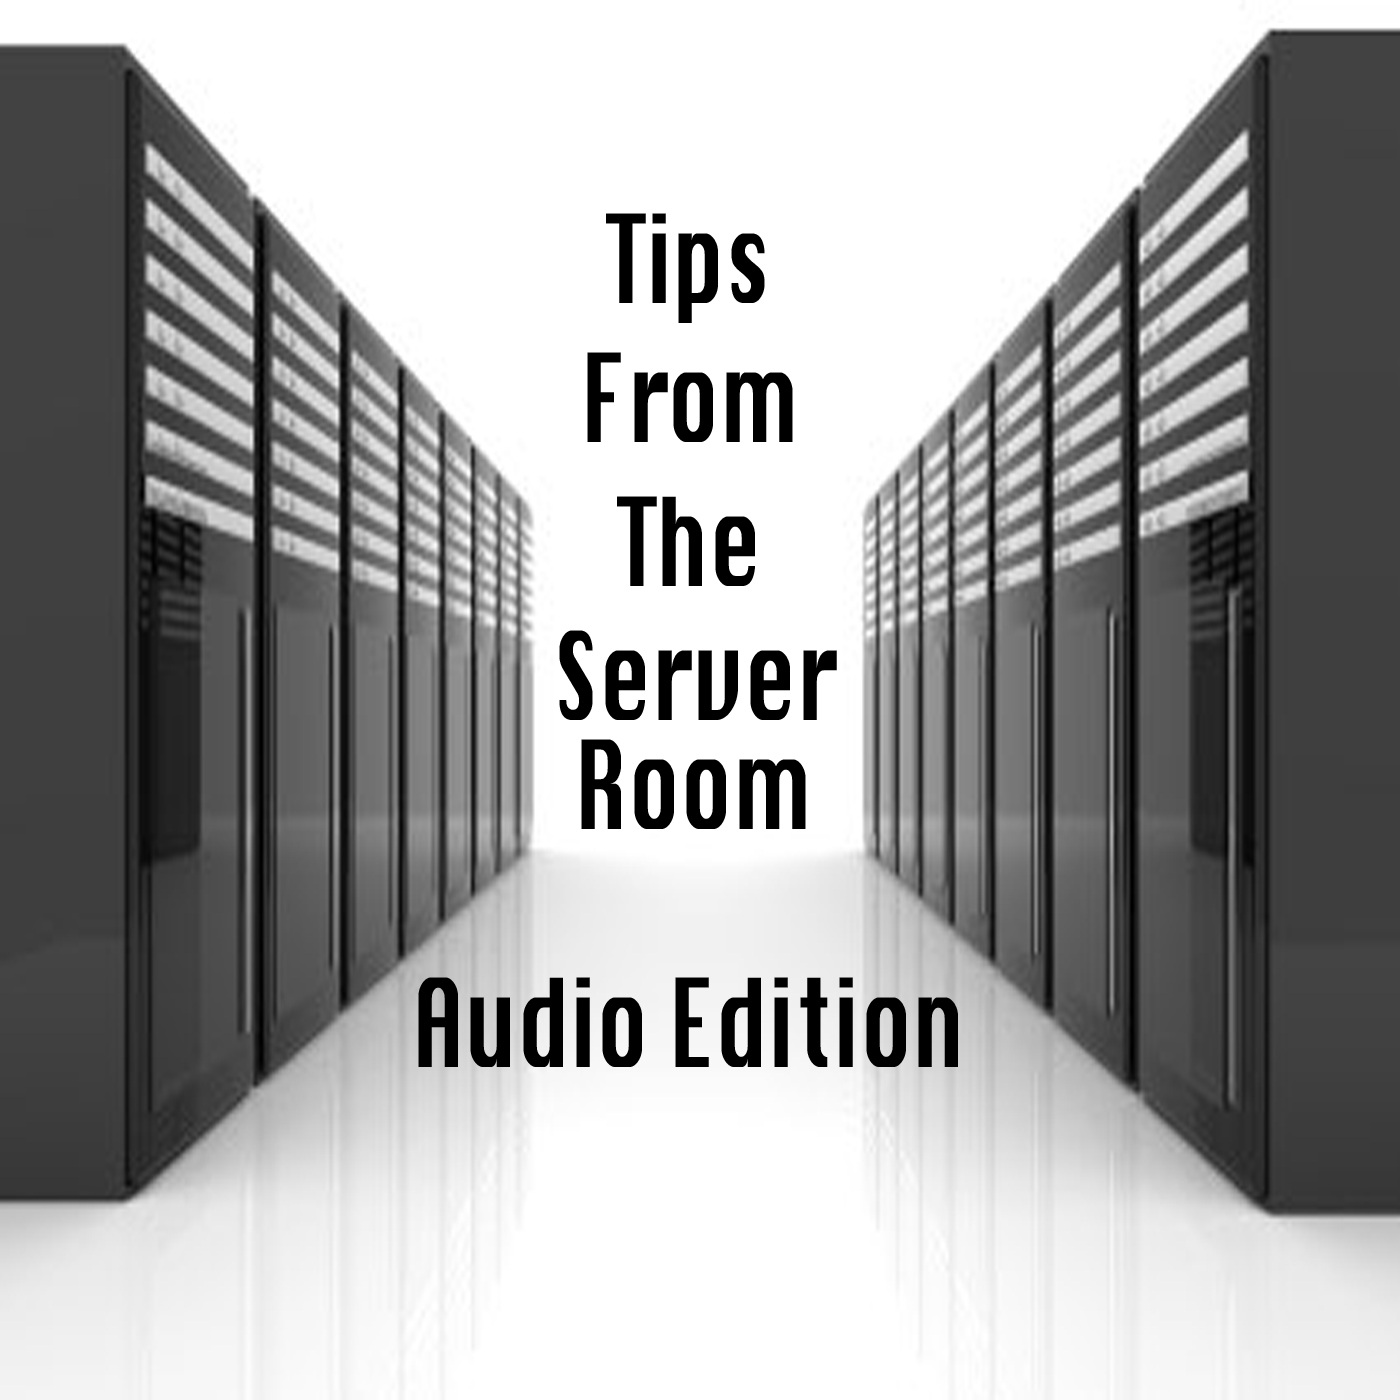 Audio Feed of Tips From The Server Room